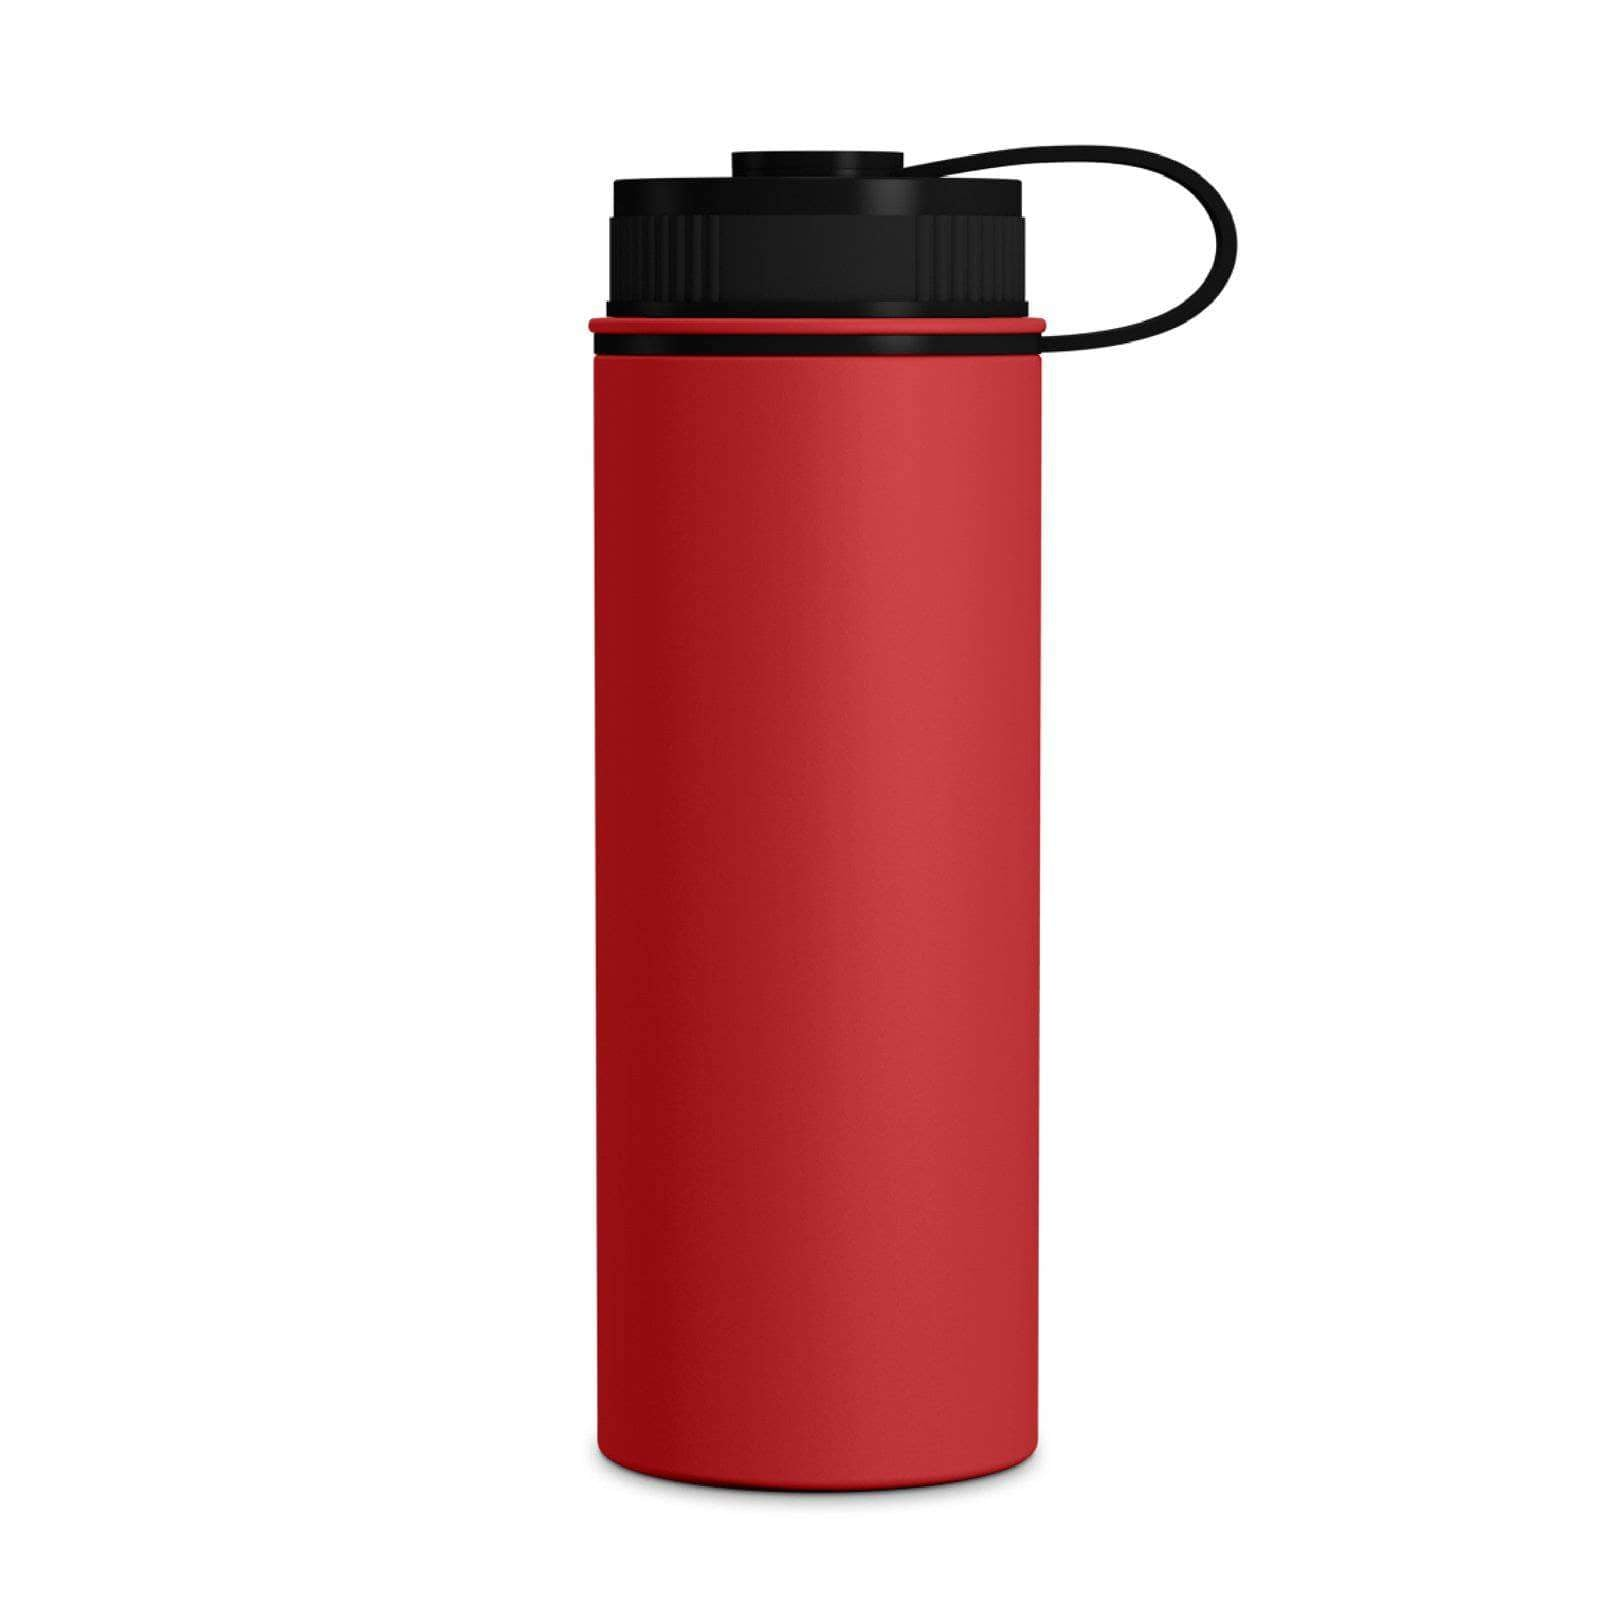 Geo Bottles Warm Red 18oz Double Wall Vacuum Insulated Flask, Wide Mouth